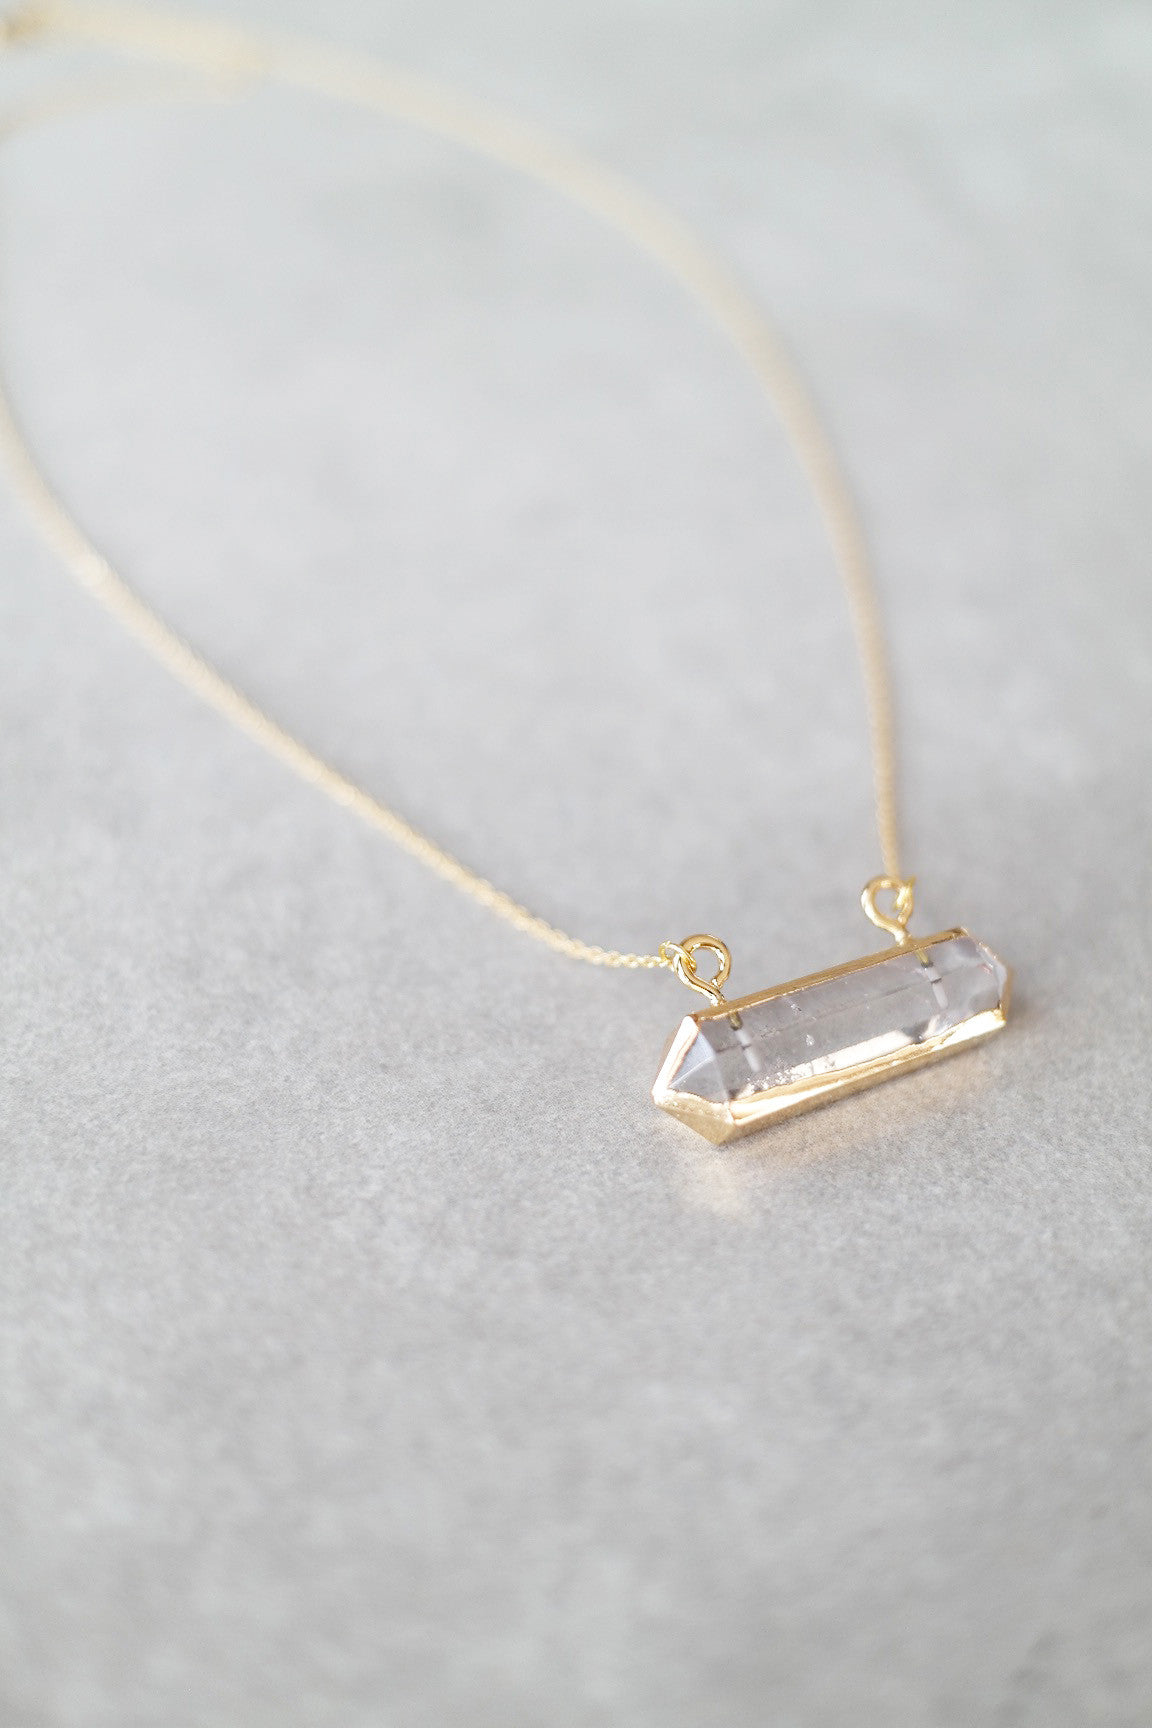 See You in Quartz Necklace